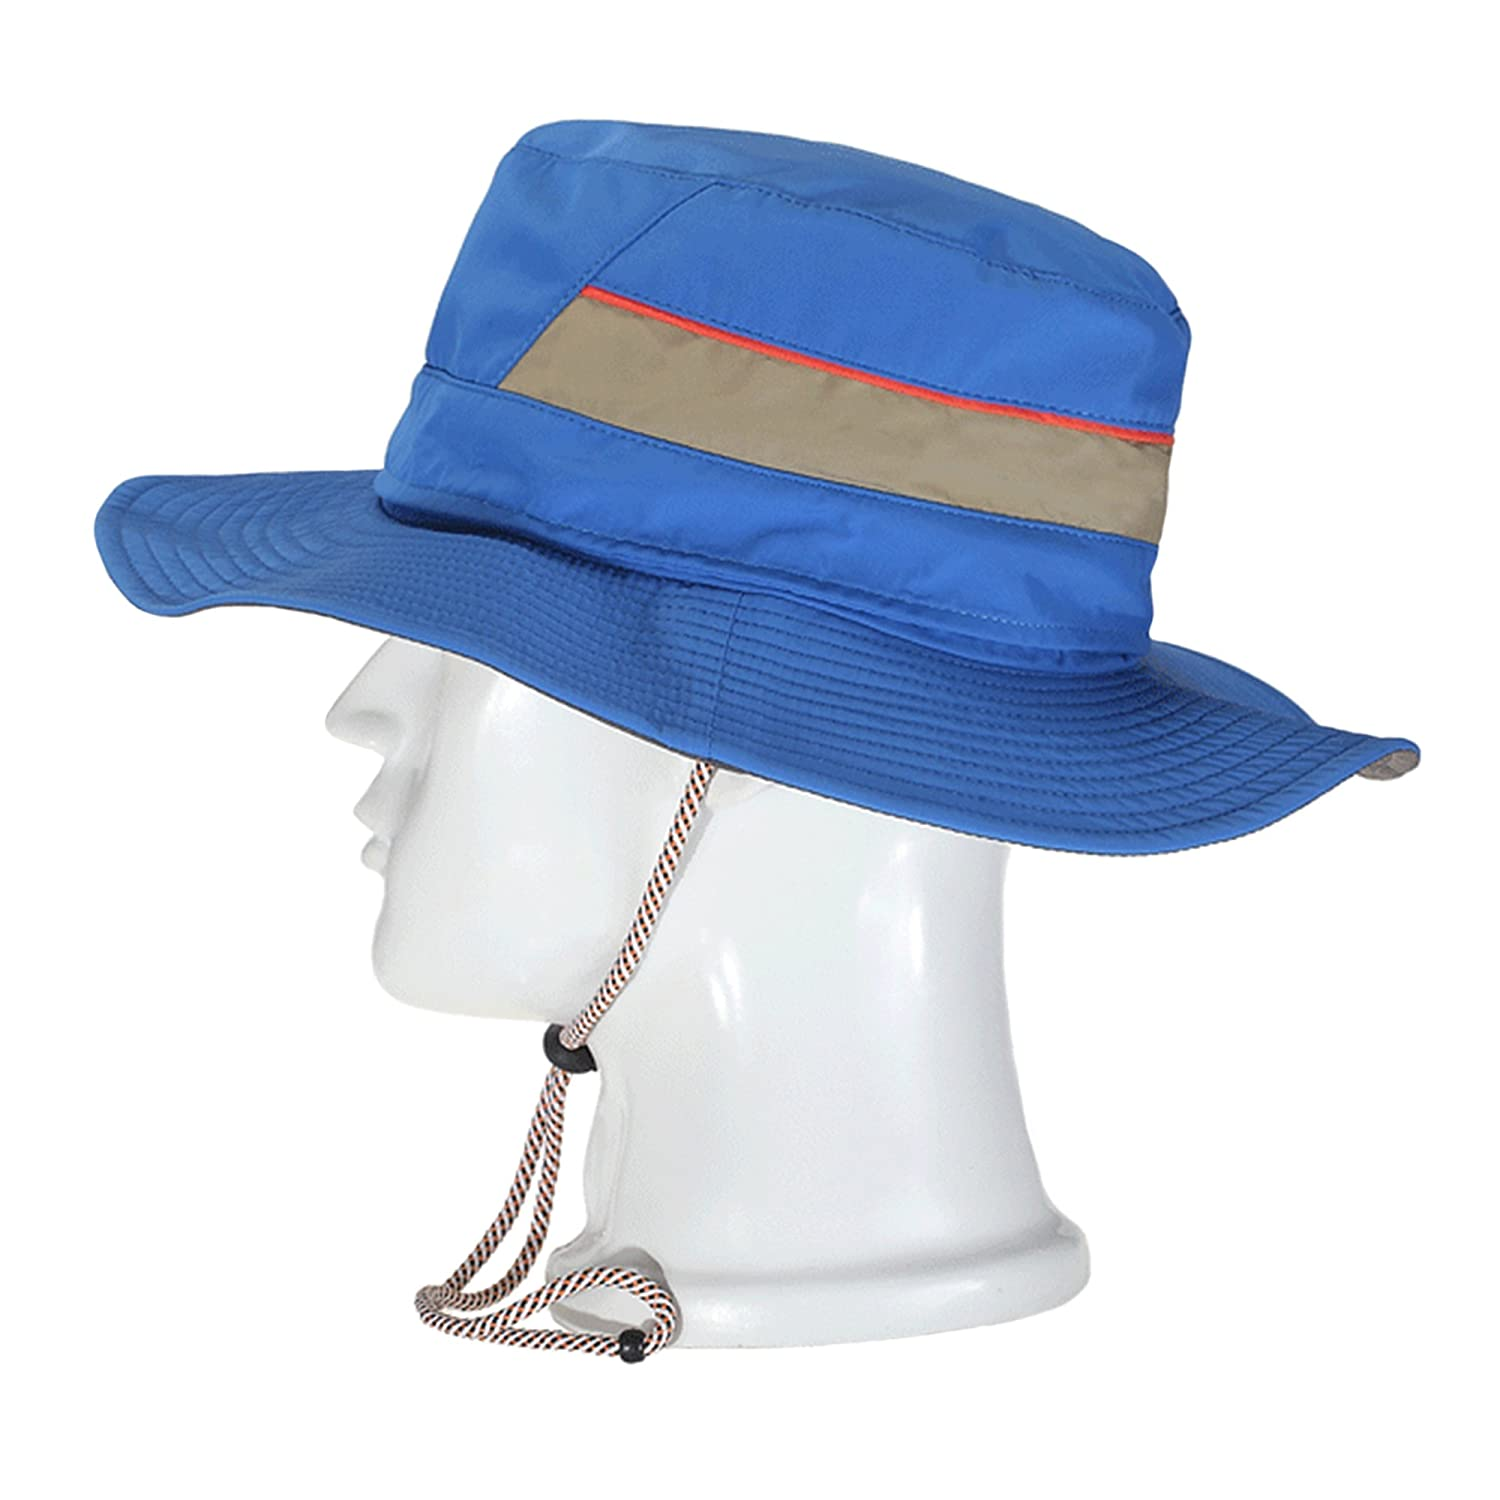 Ksenia Detachable Bucket Hat Wide Brim Quick Dry Mesh Sun Hat with String  at Amazon Men s Clothing store  69f9f32b09a